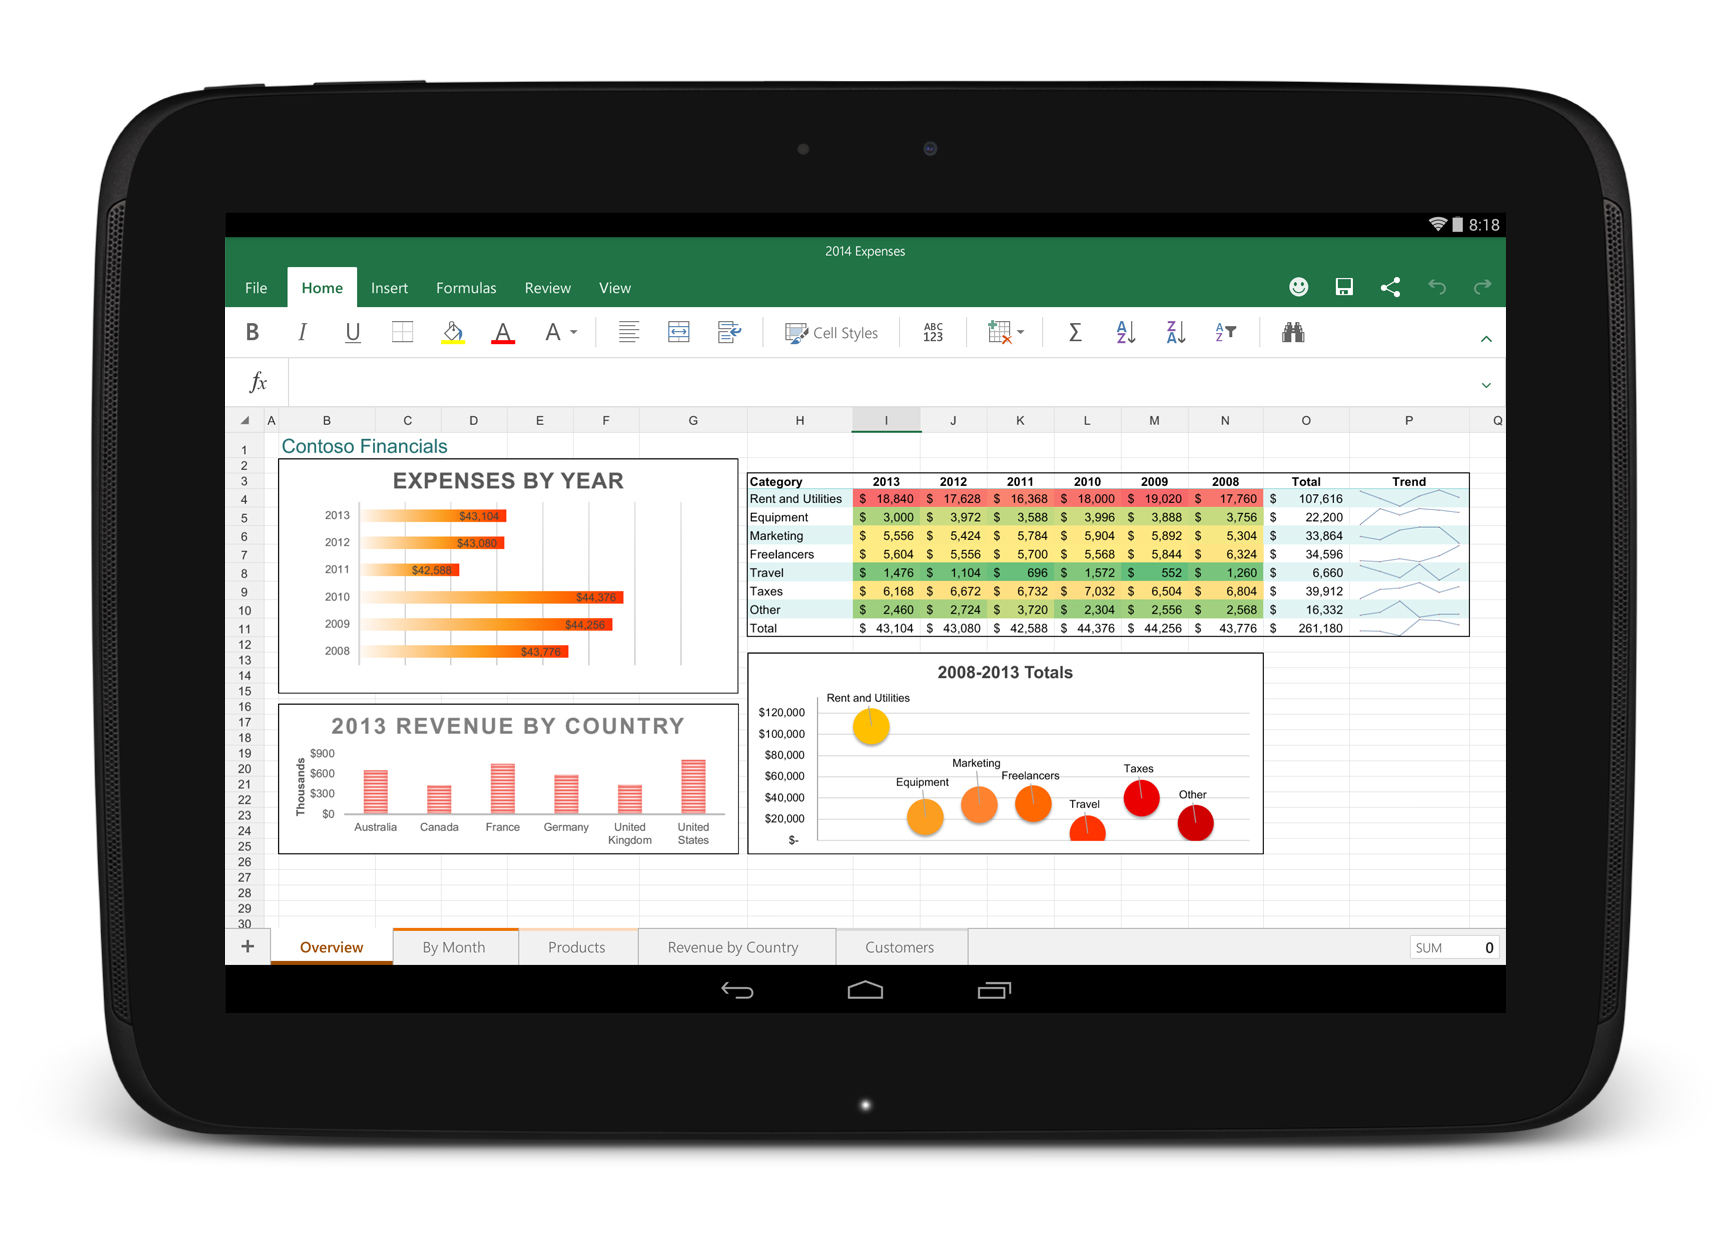 Android tablet office apps free download